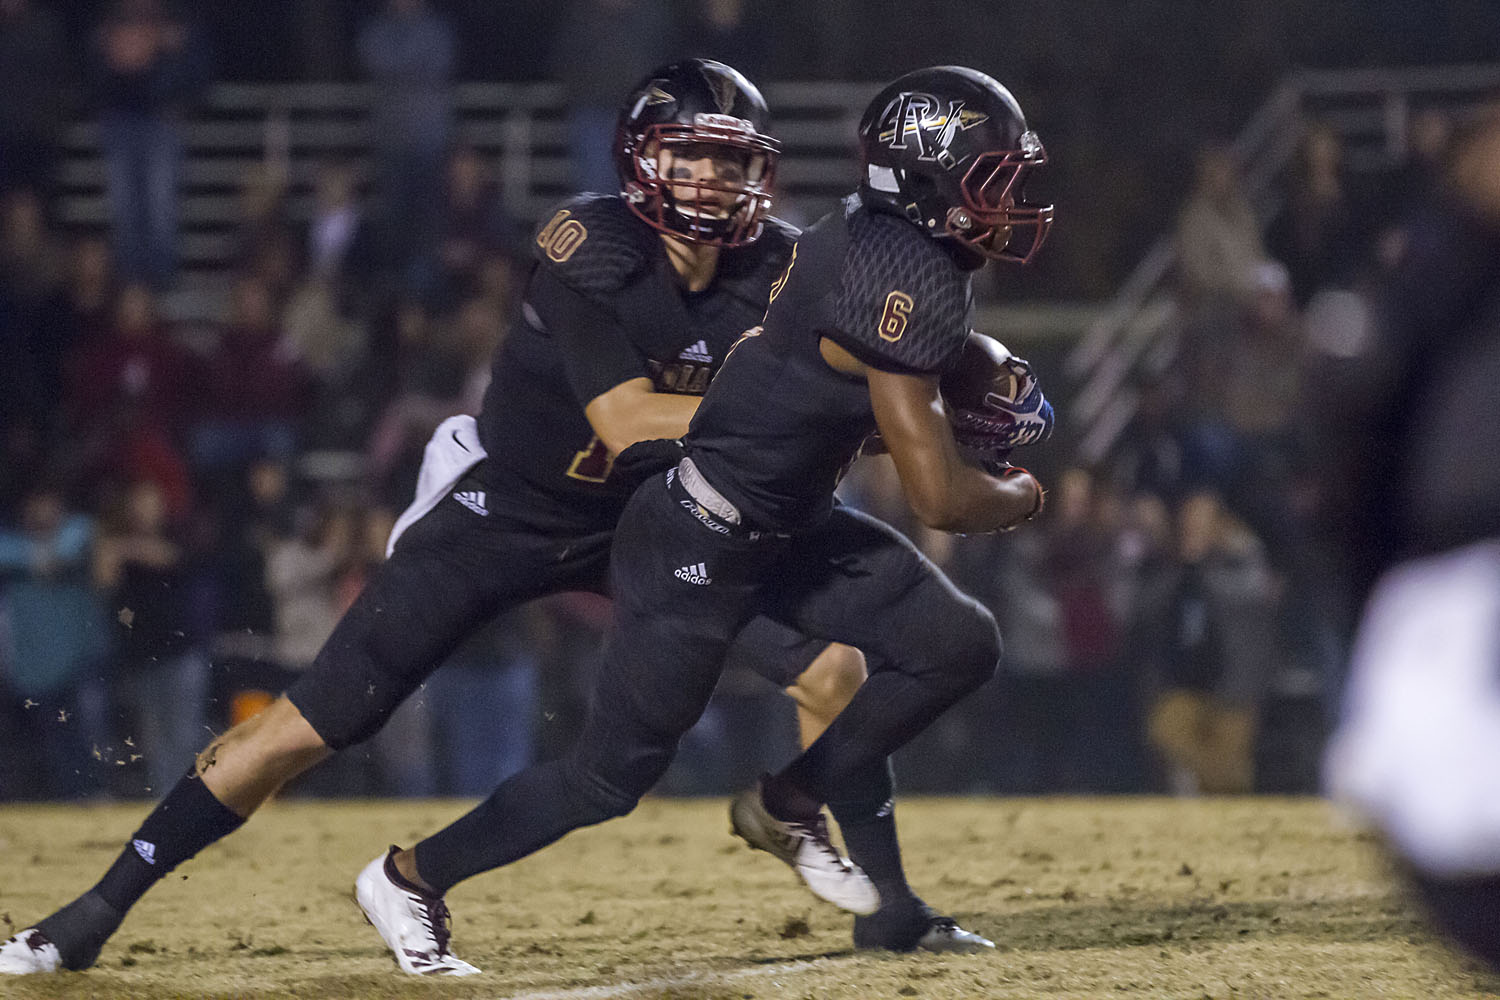 Bo Nix, Indians overcome adversity en route to title